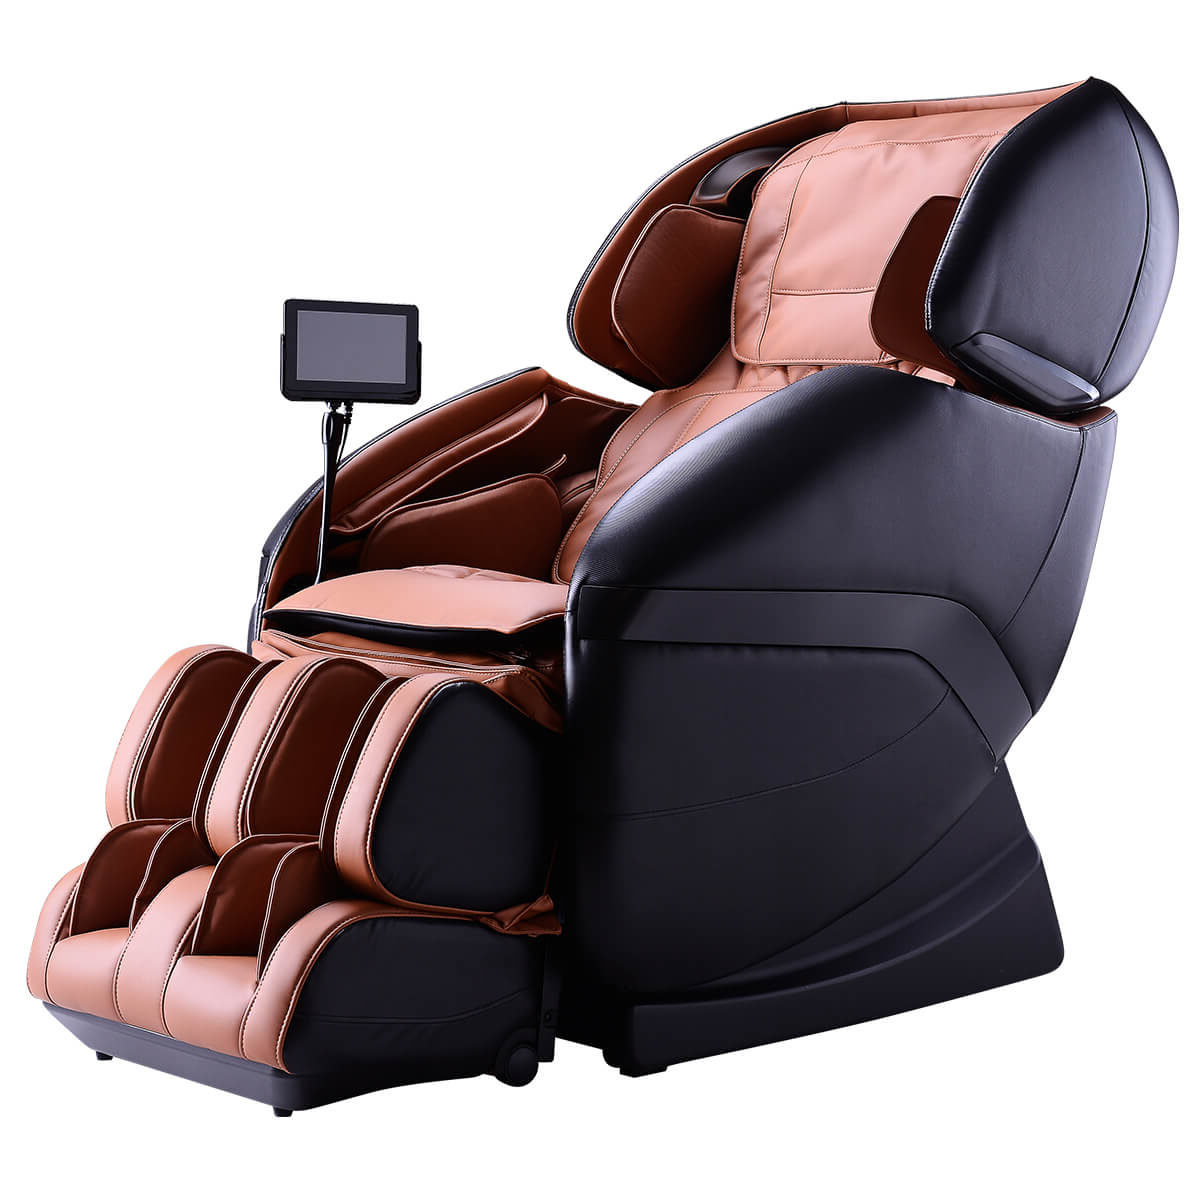 ogawa massage chair covers and wedding decorations active l reviews